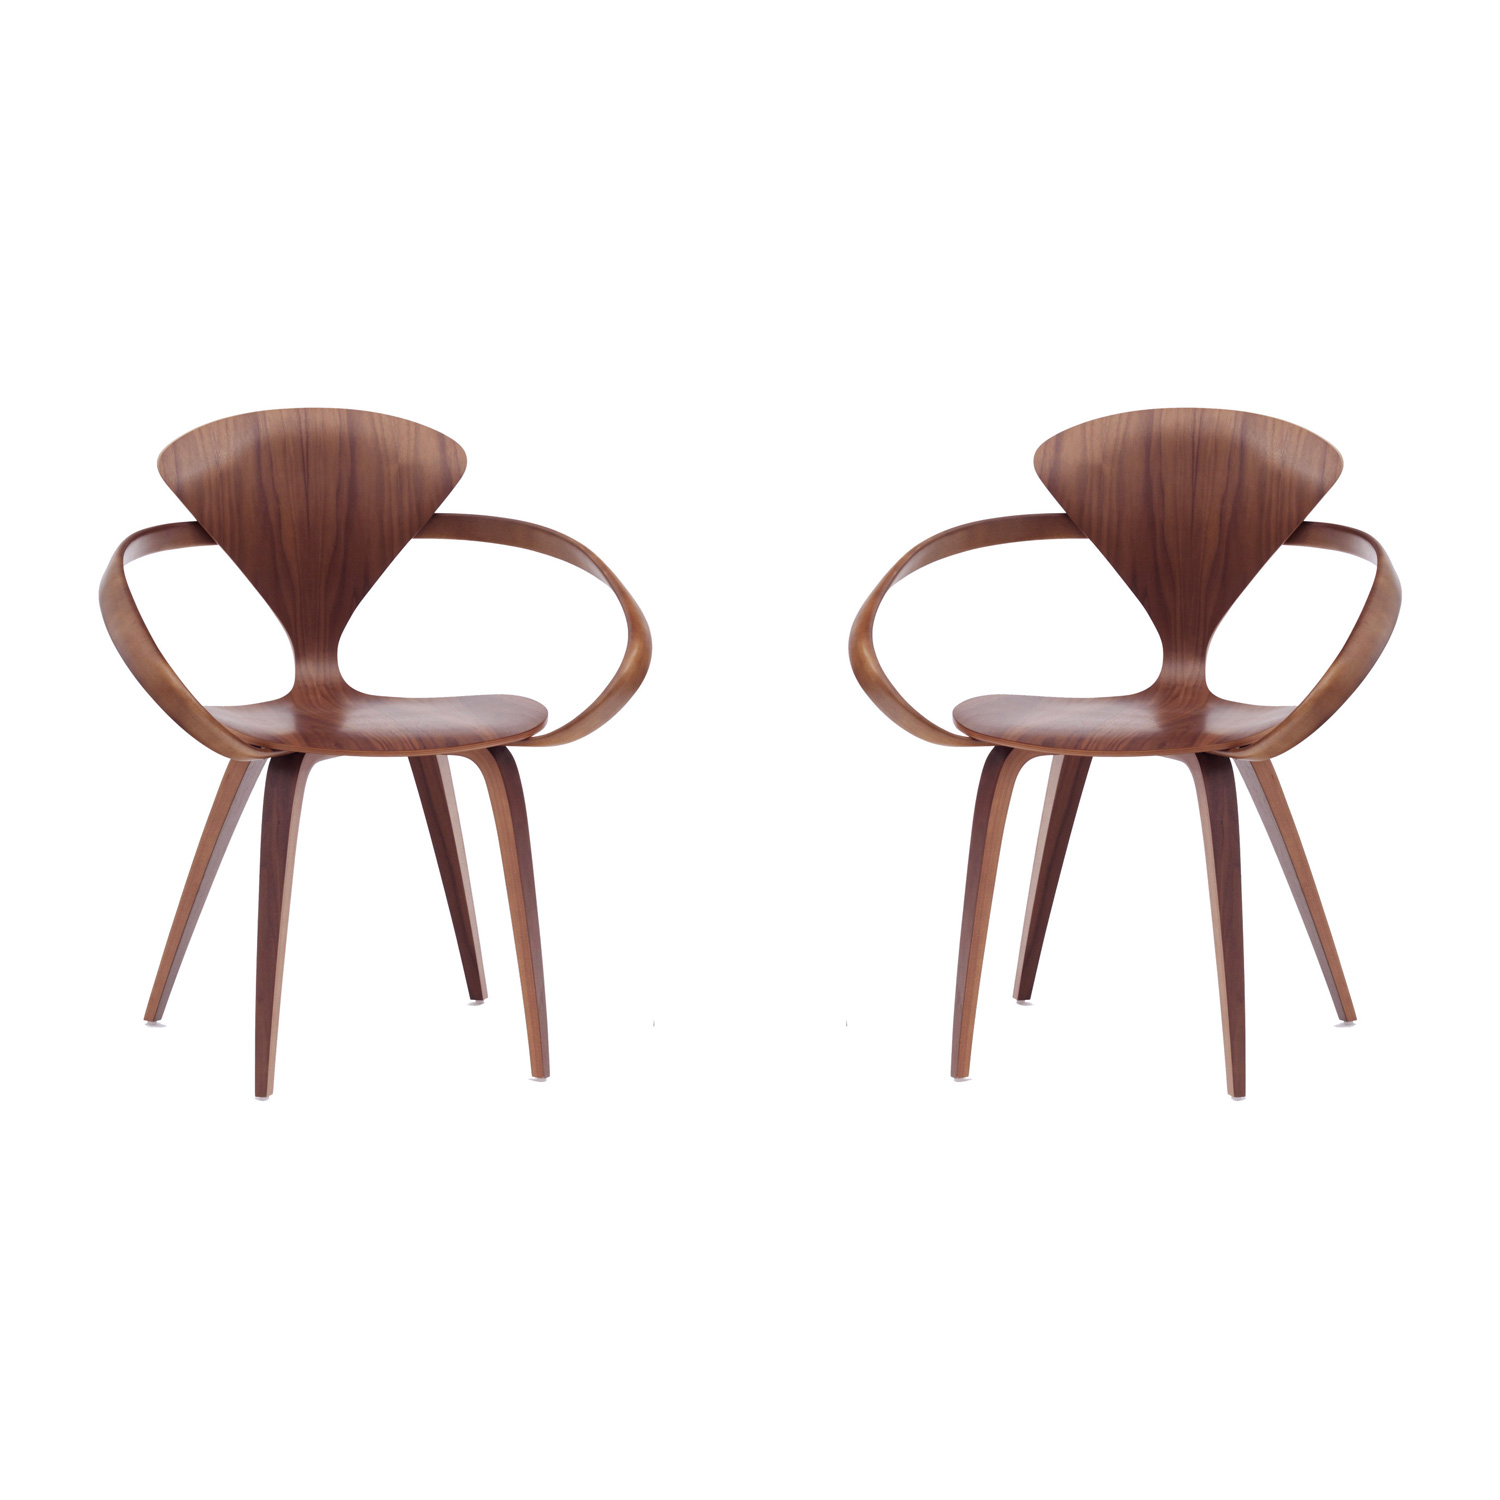 Set of 2 Cherner armchairs An Original Norman Cherner chair